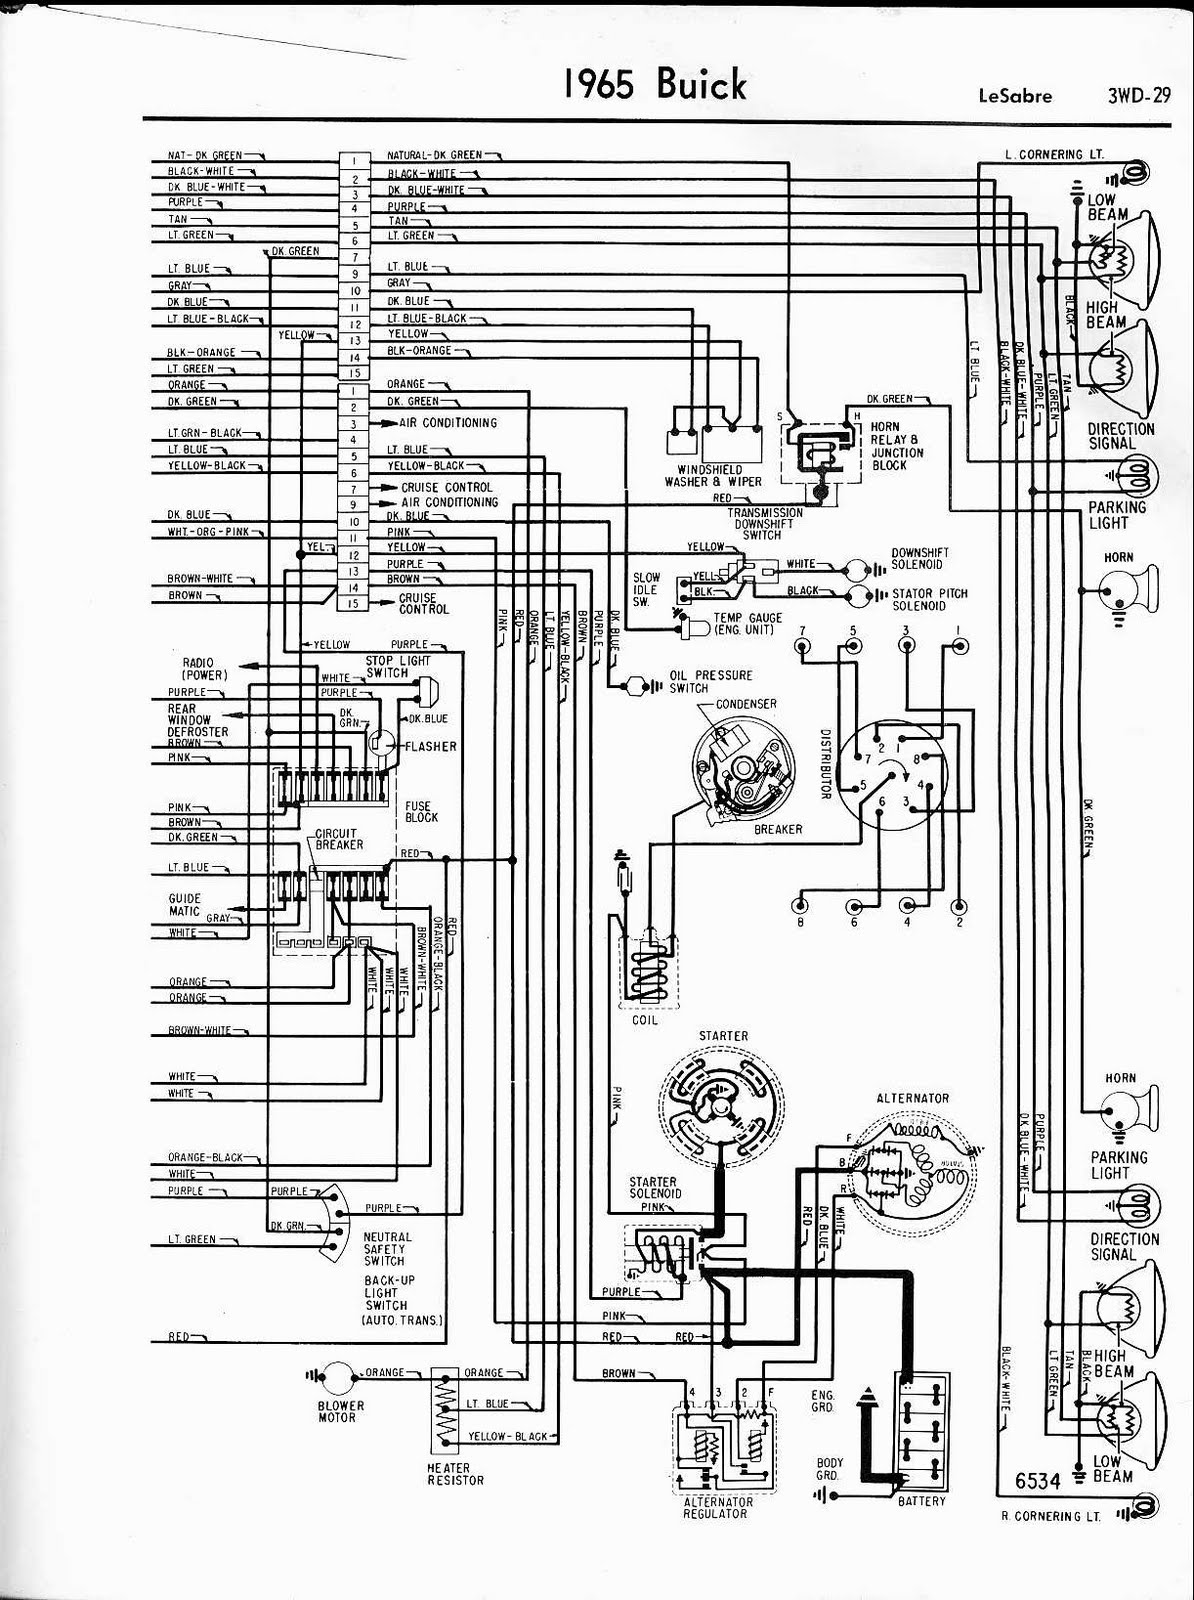 1996 Nissan Pickup Tail Light Wiring Diagram Vw Beetle 1969 Altima Further Pathfinder Throttle